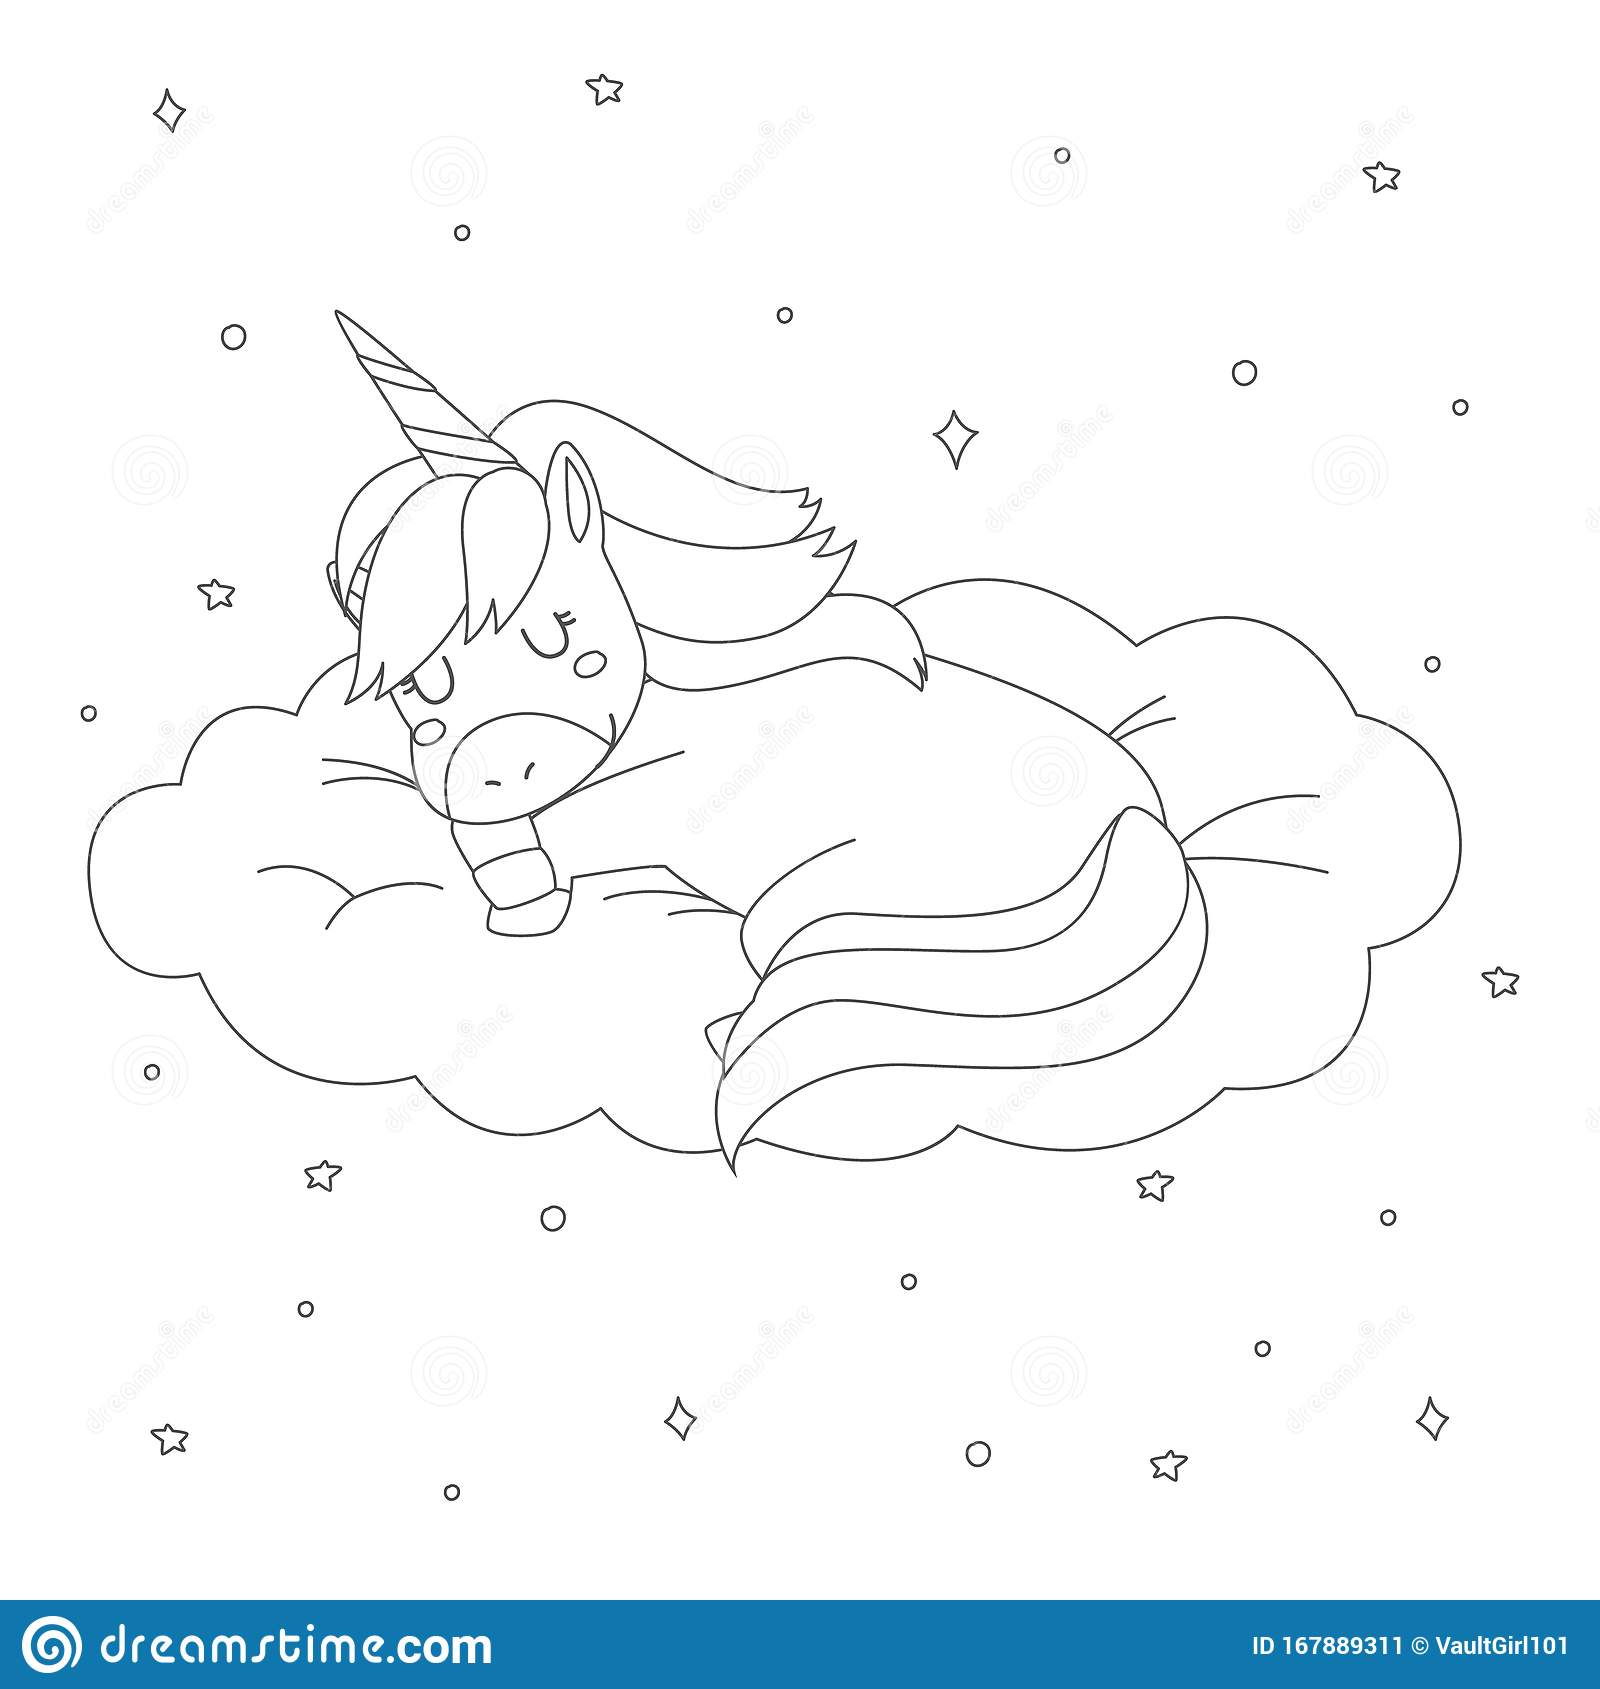 Sleeping Unicorn Coloring Page For Kids Vector Design Stock Vector Illustration Of Kids Character 167889311